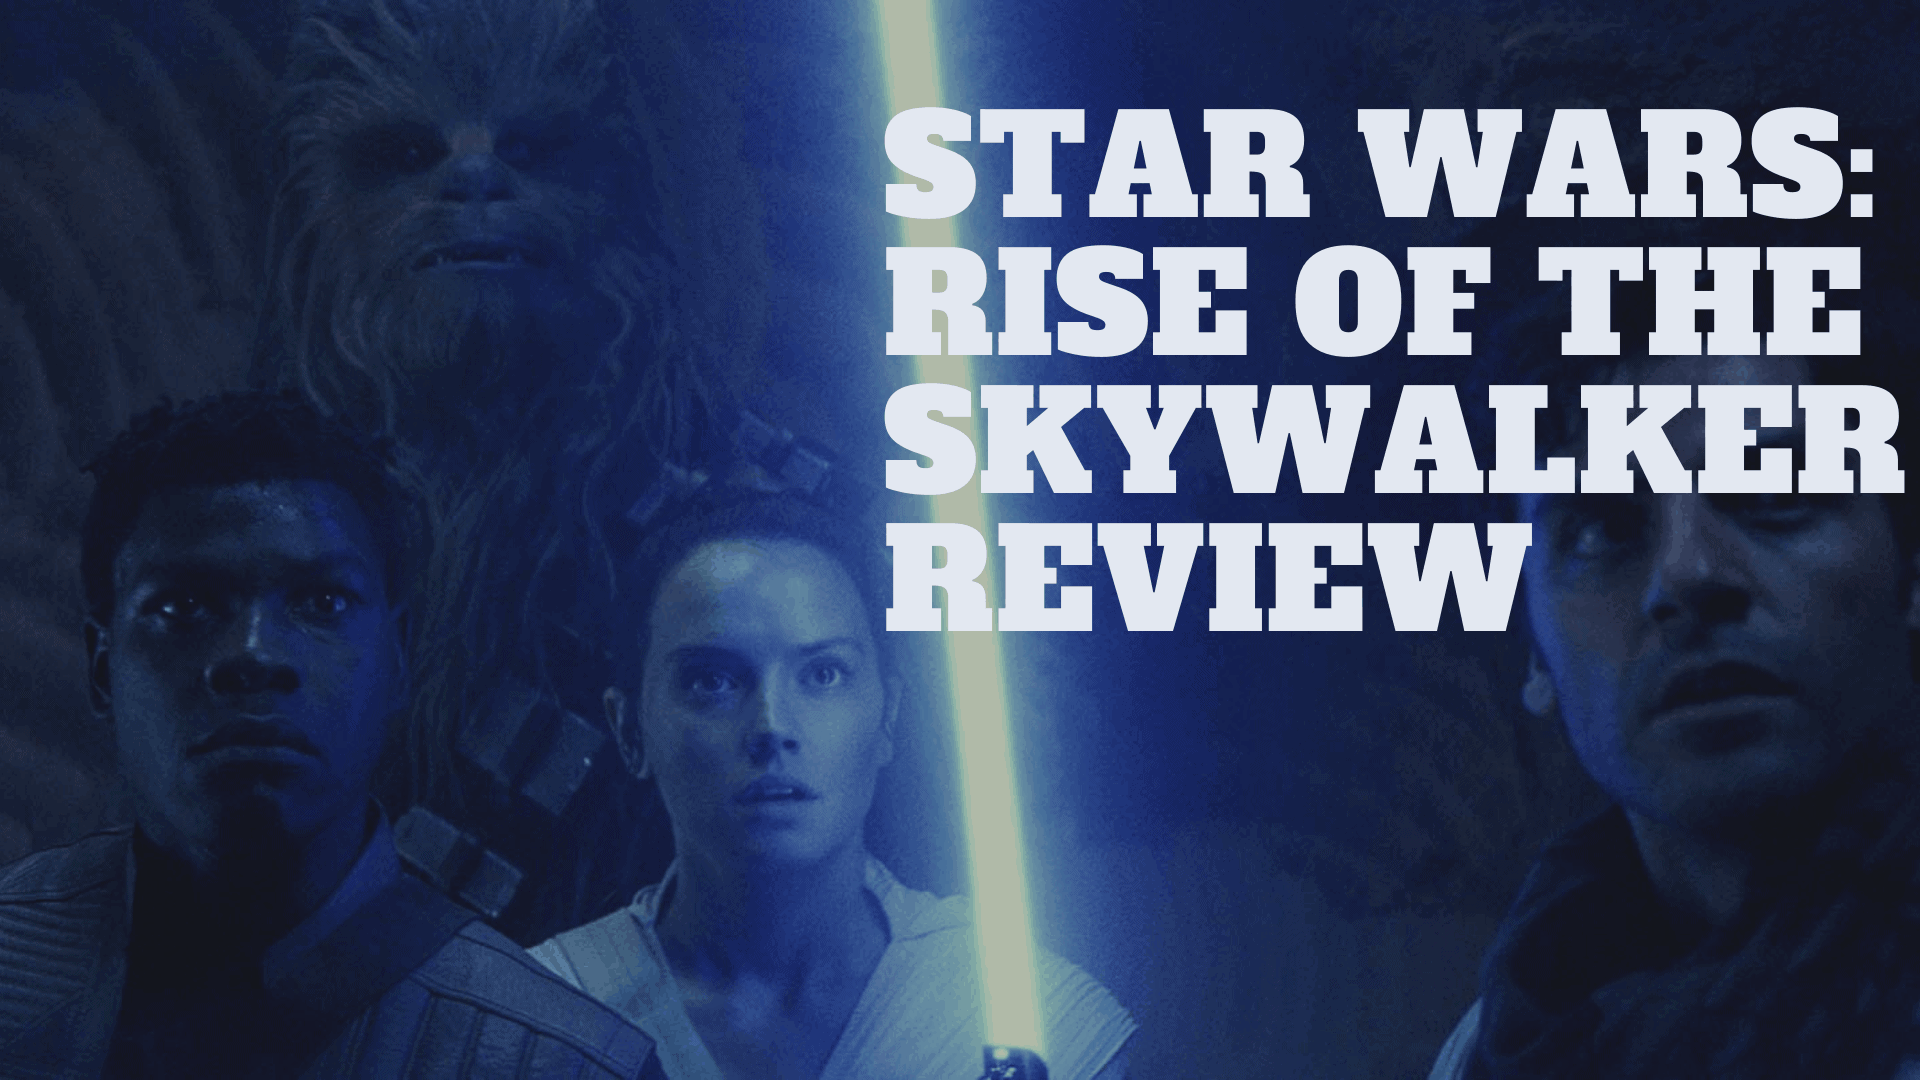 Dudefluencer: Star Wars: Rise of the Skywalker Review